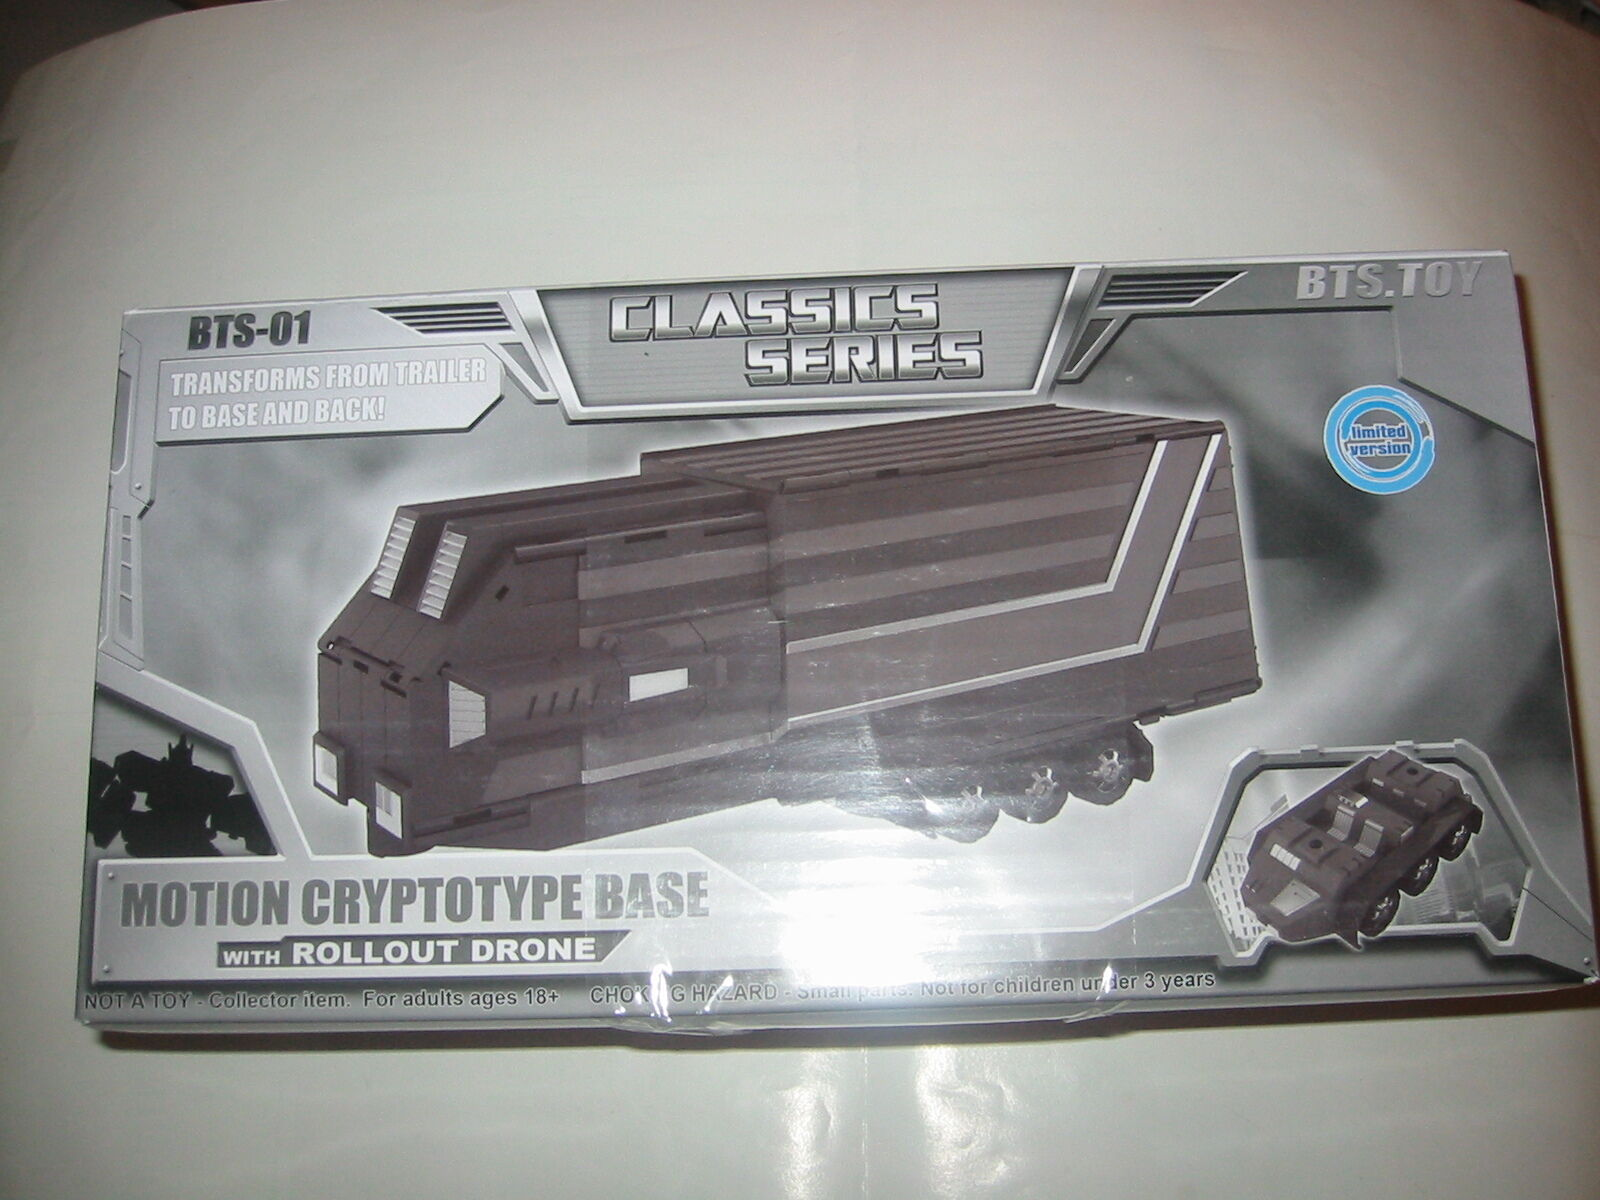 BTS-01 Classic Series Motion Cryptotype Base Rollout Drone Optimus Prime Trailer